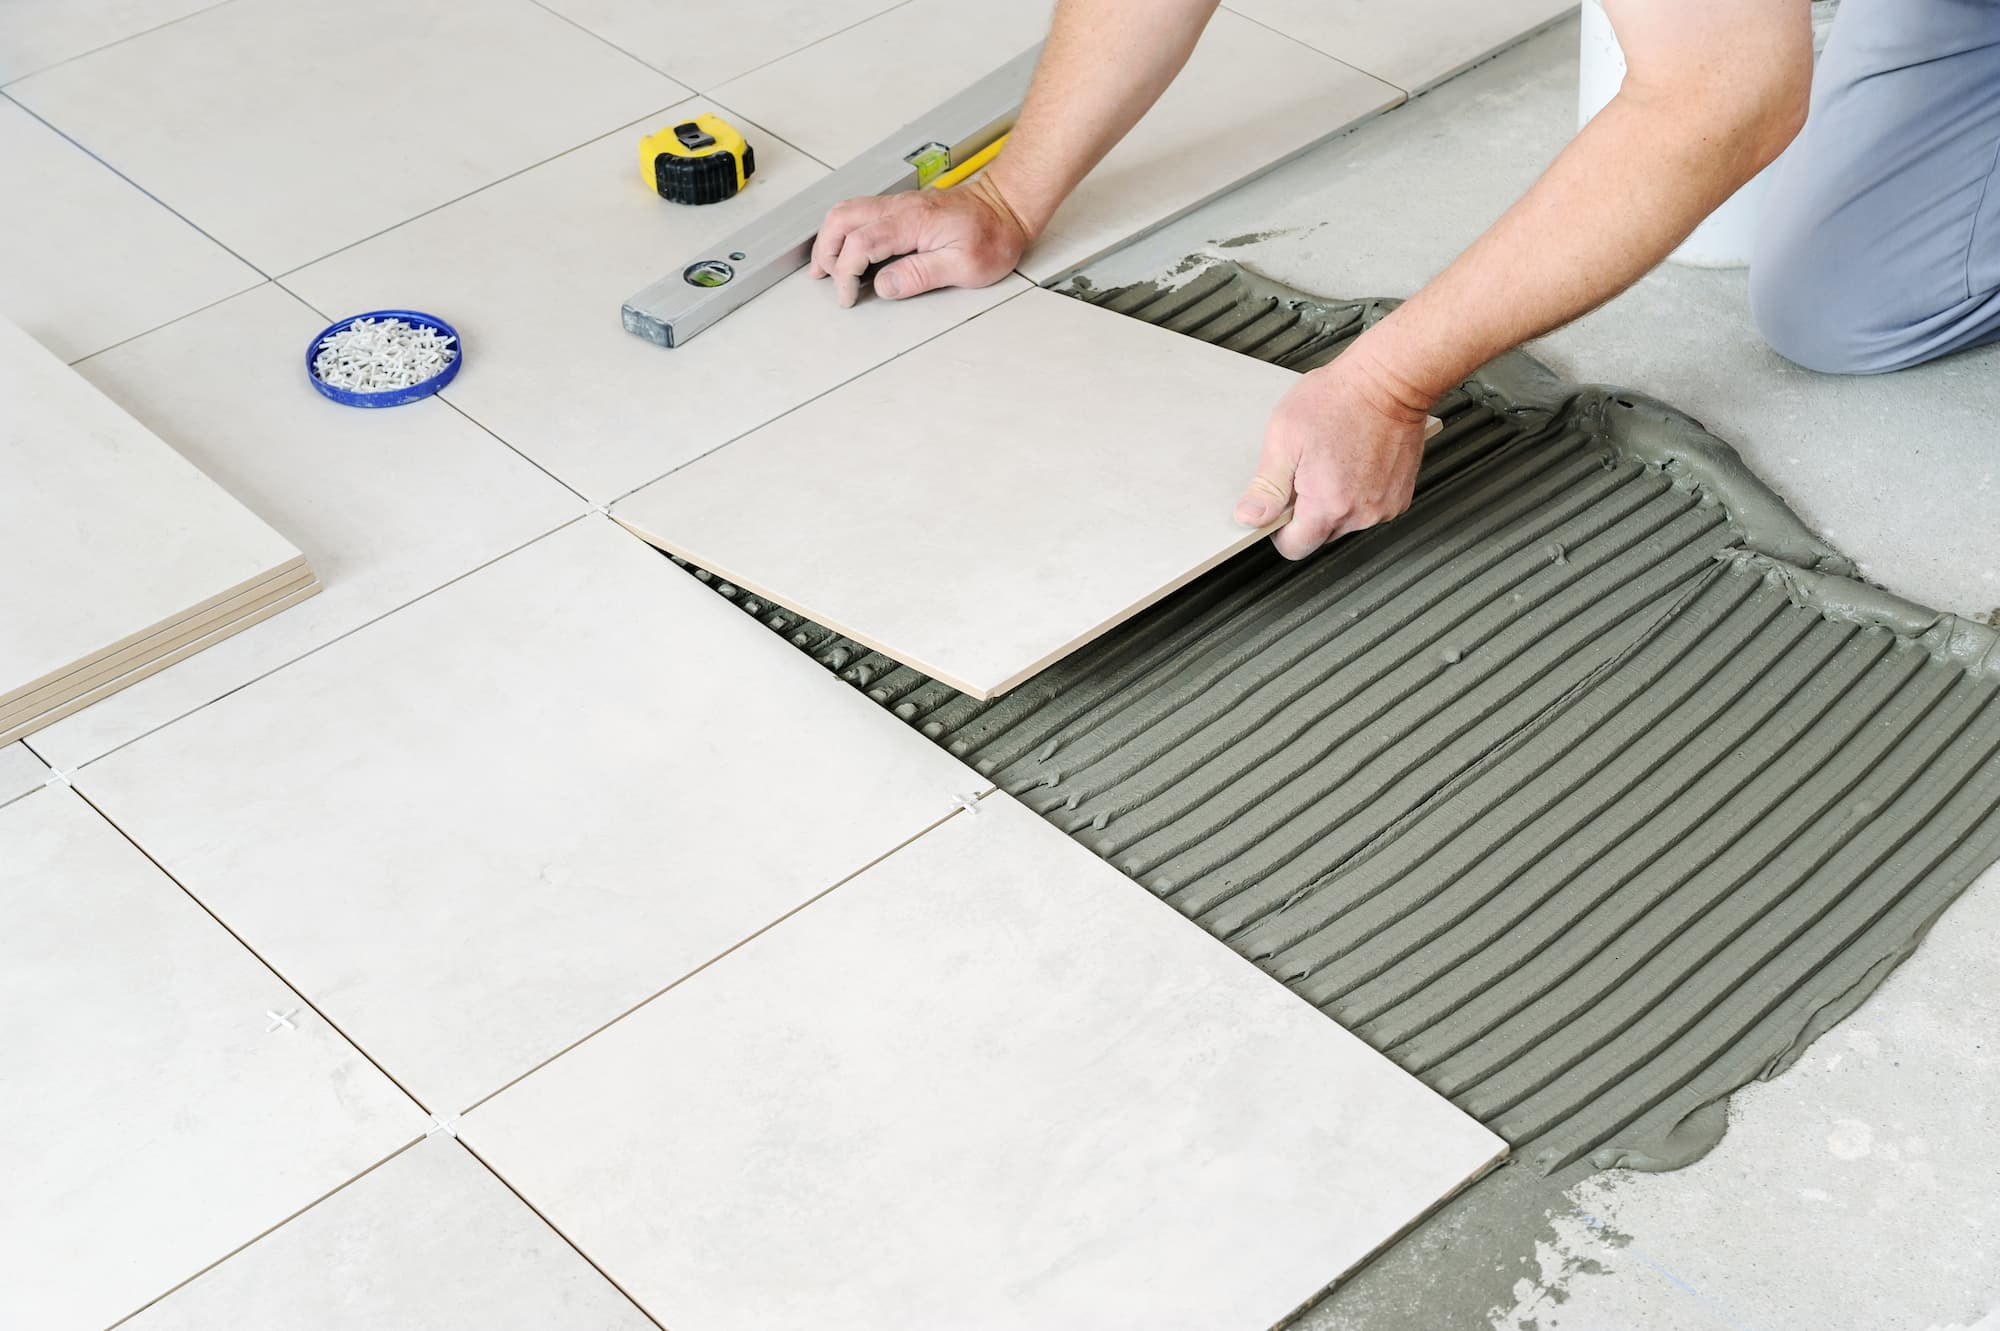 Someone installing tiles into a floor